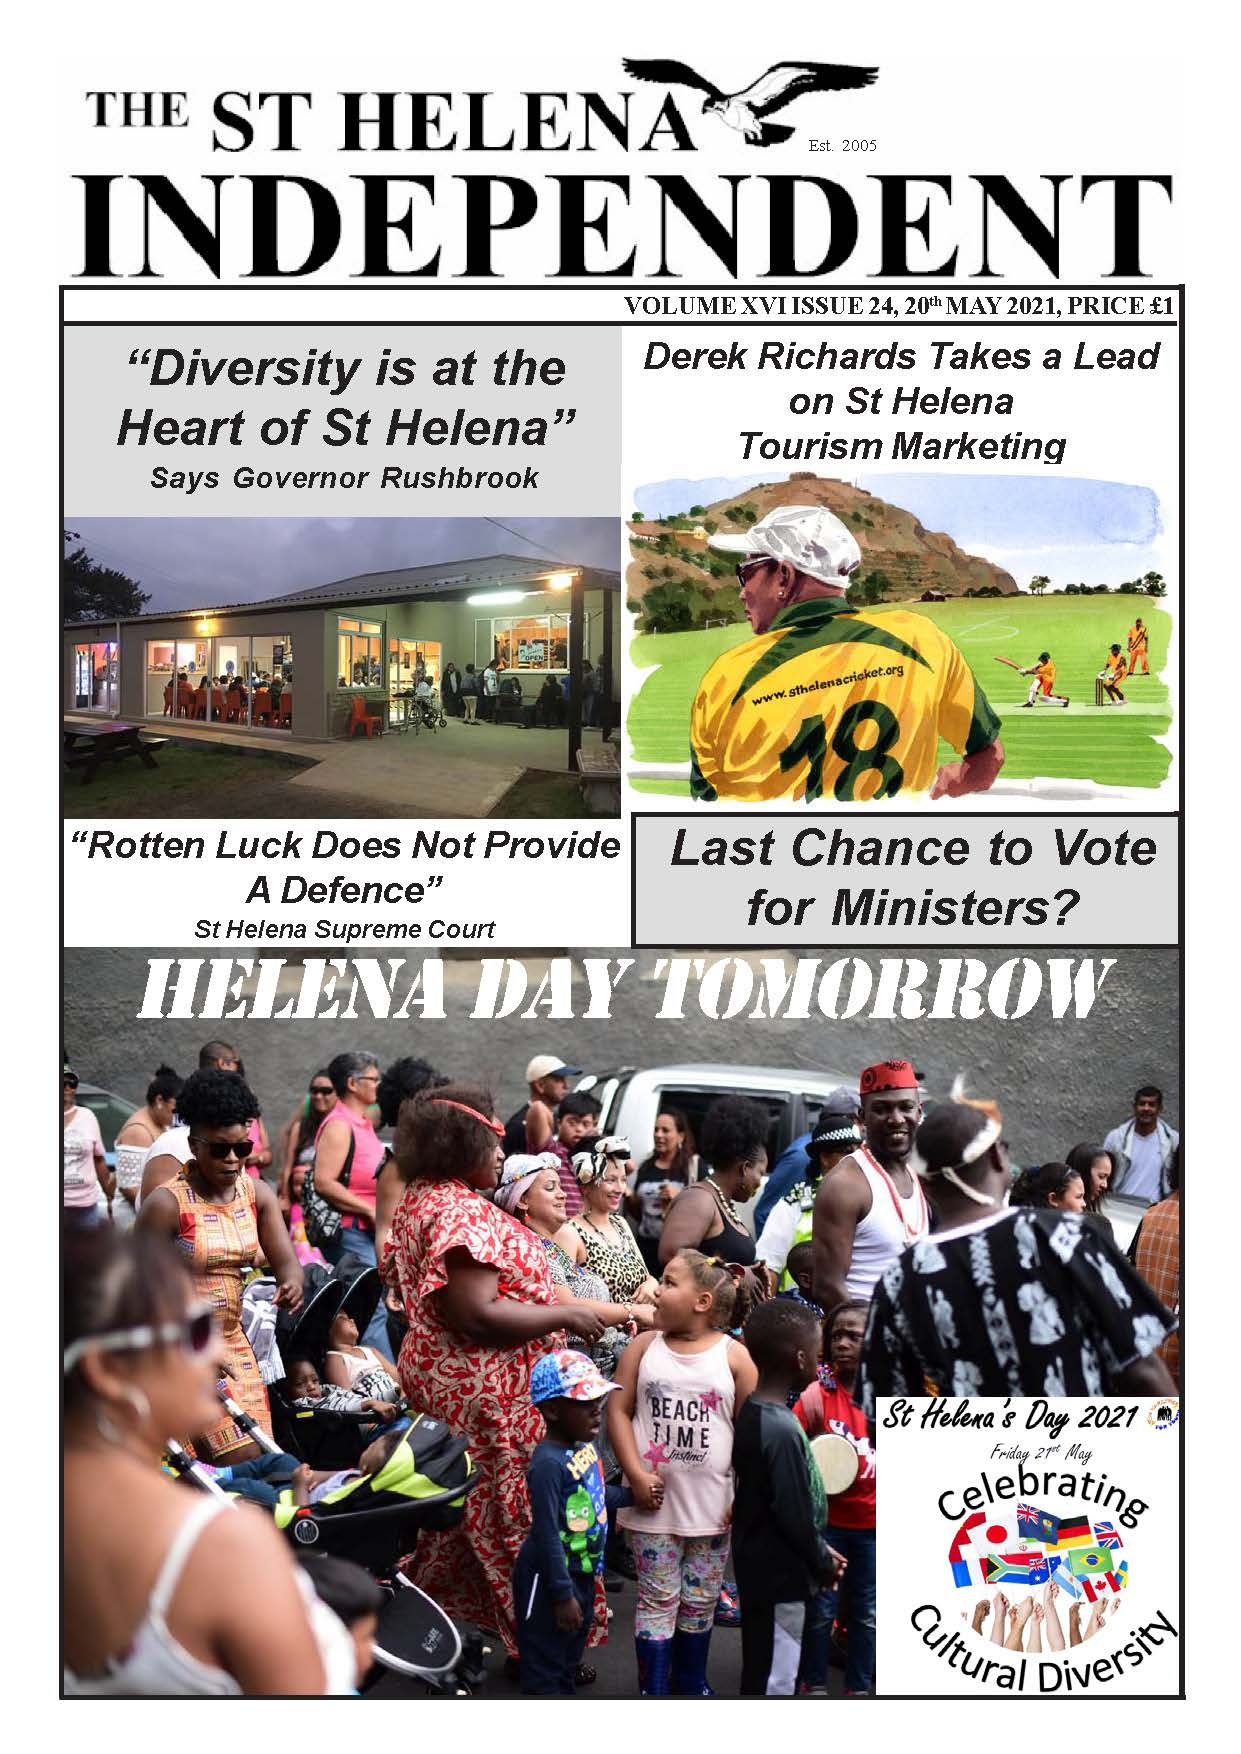 St Helena Independent 20210520 p1